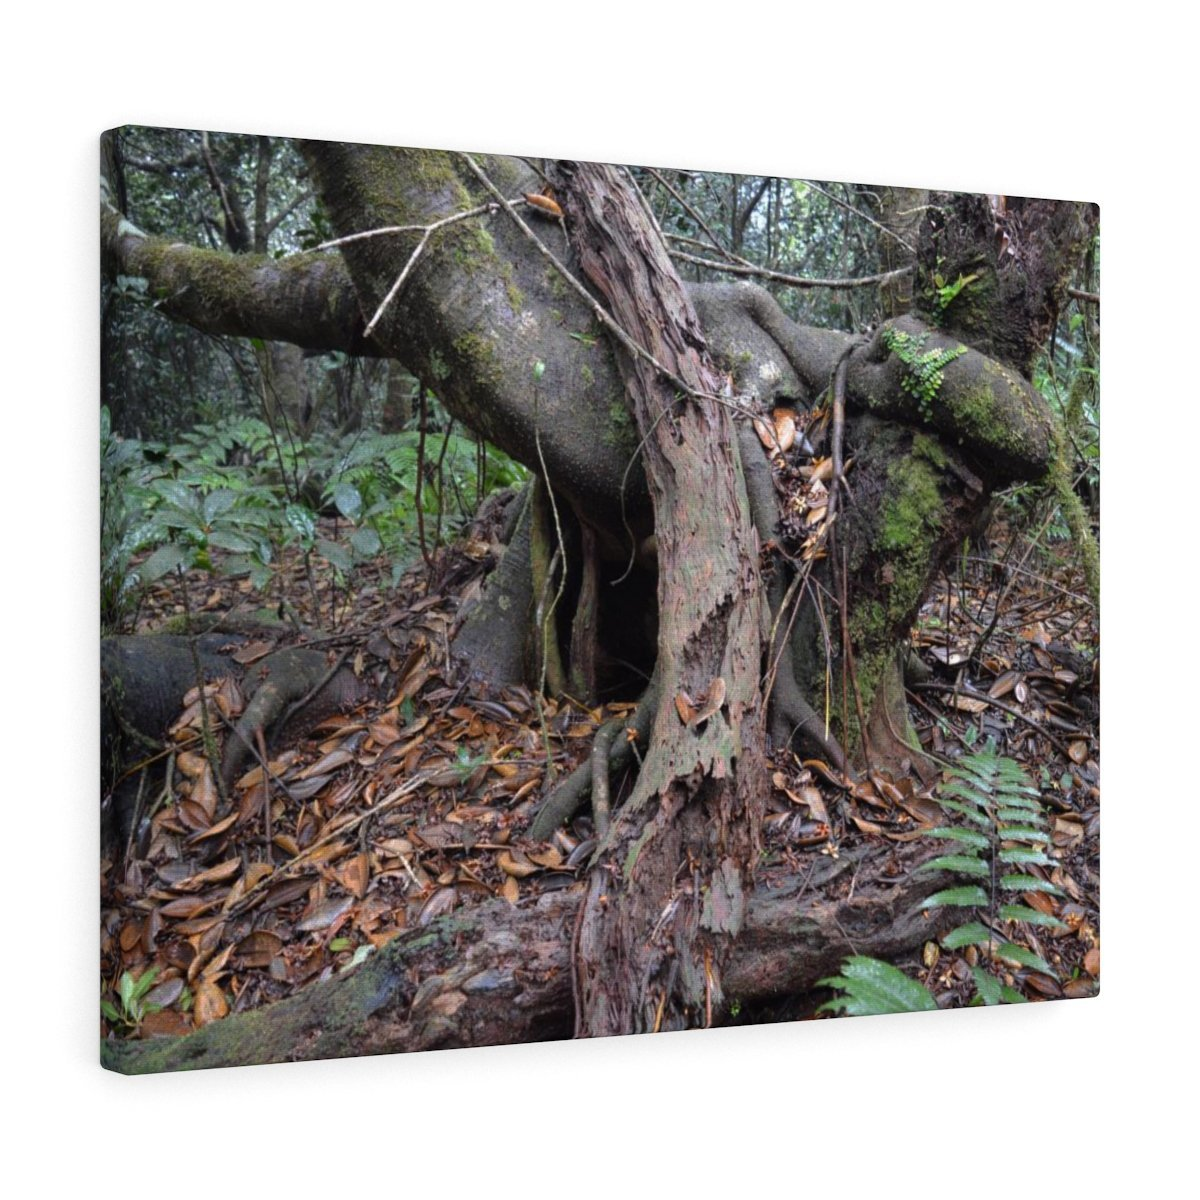 Old Pal in the 14km Tradewinds Trail explorations - El Yunque rainforest - Canvas Gallery Wraps - SingleClick.store